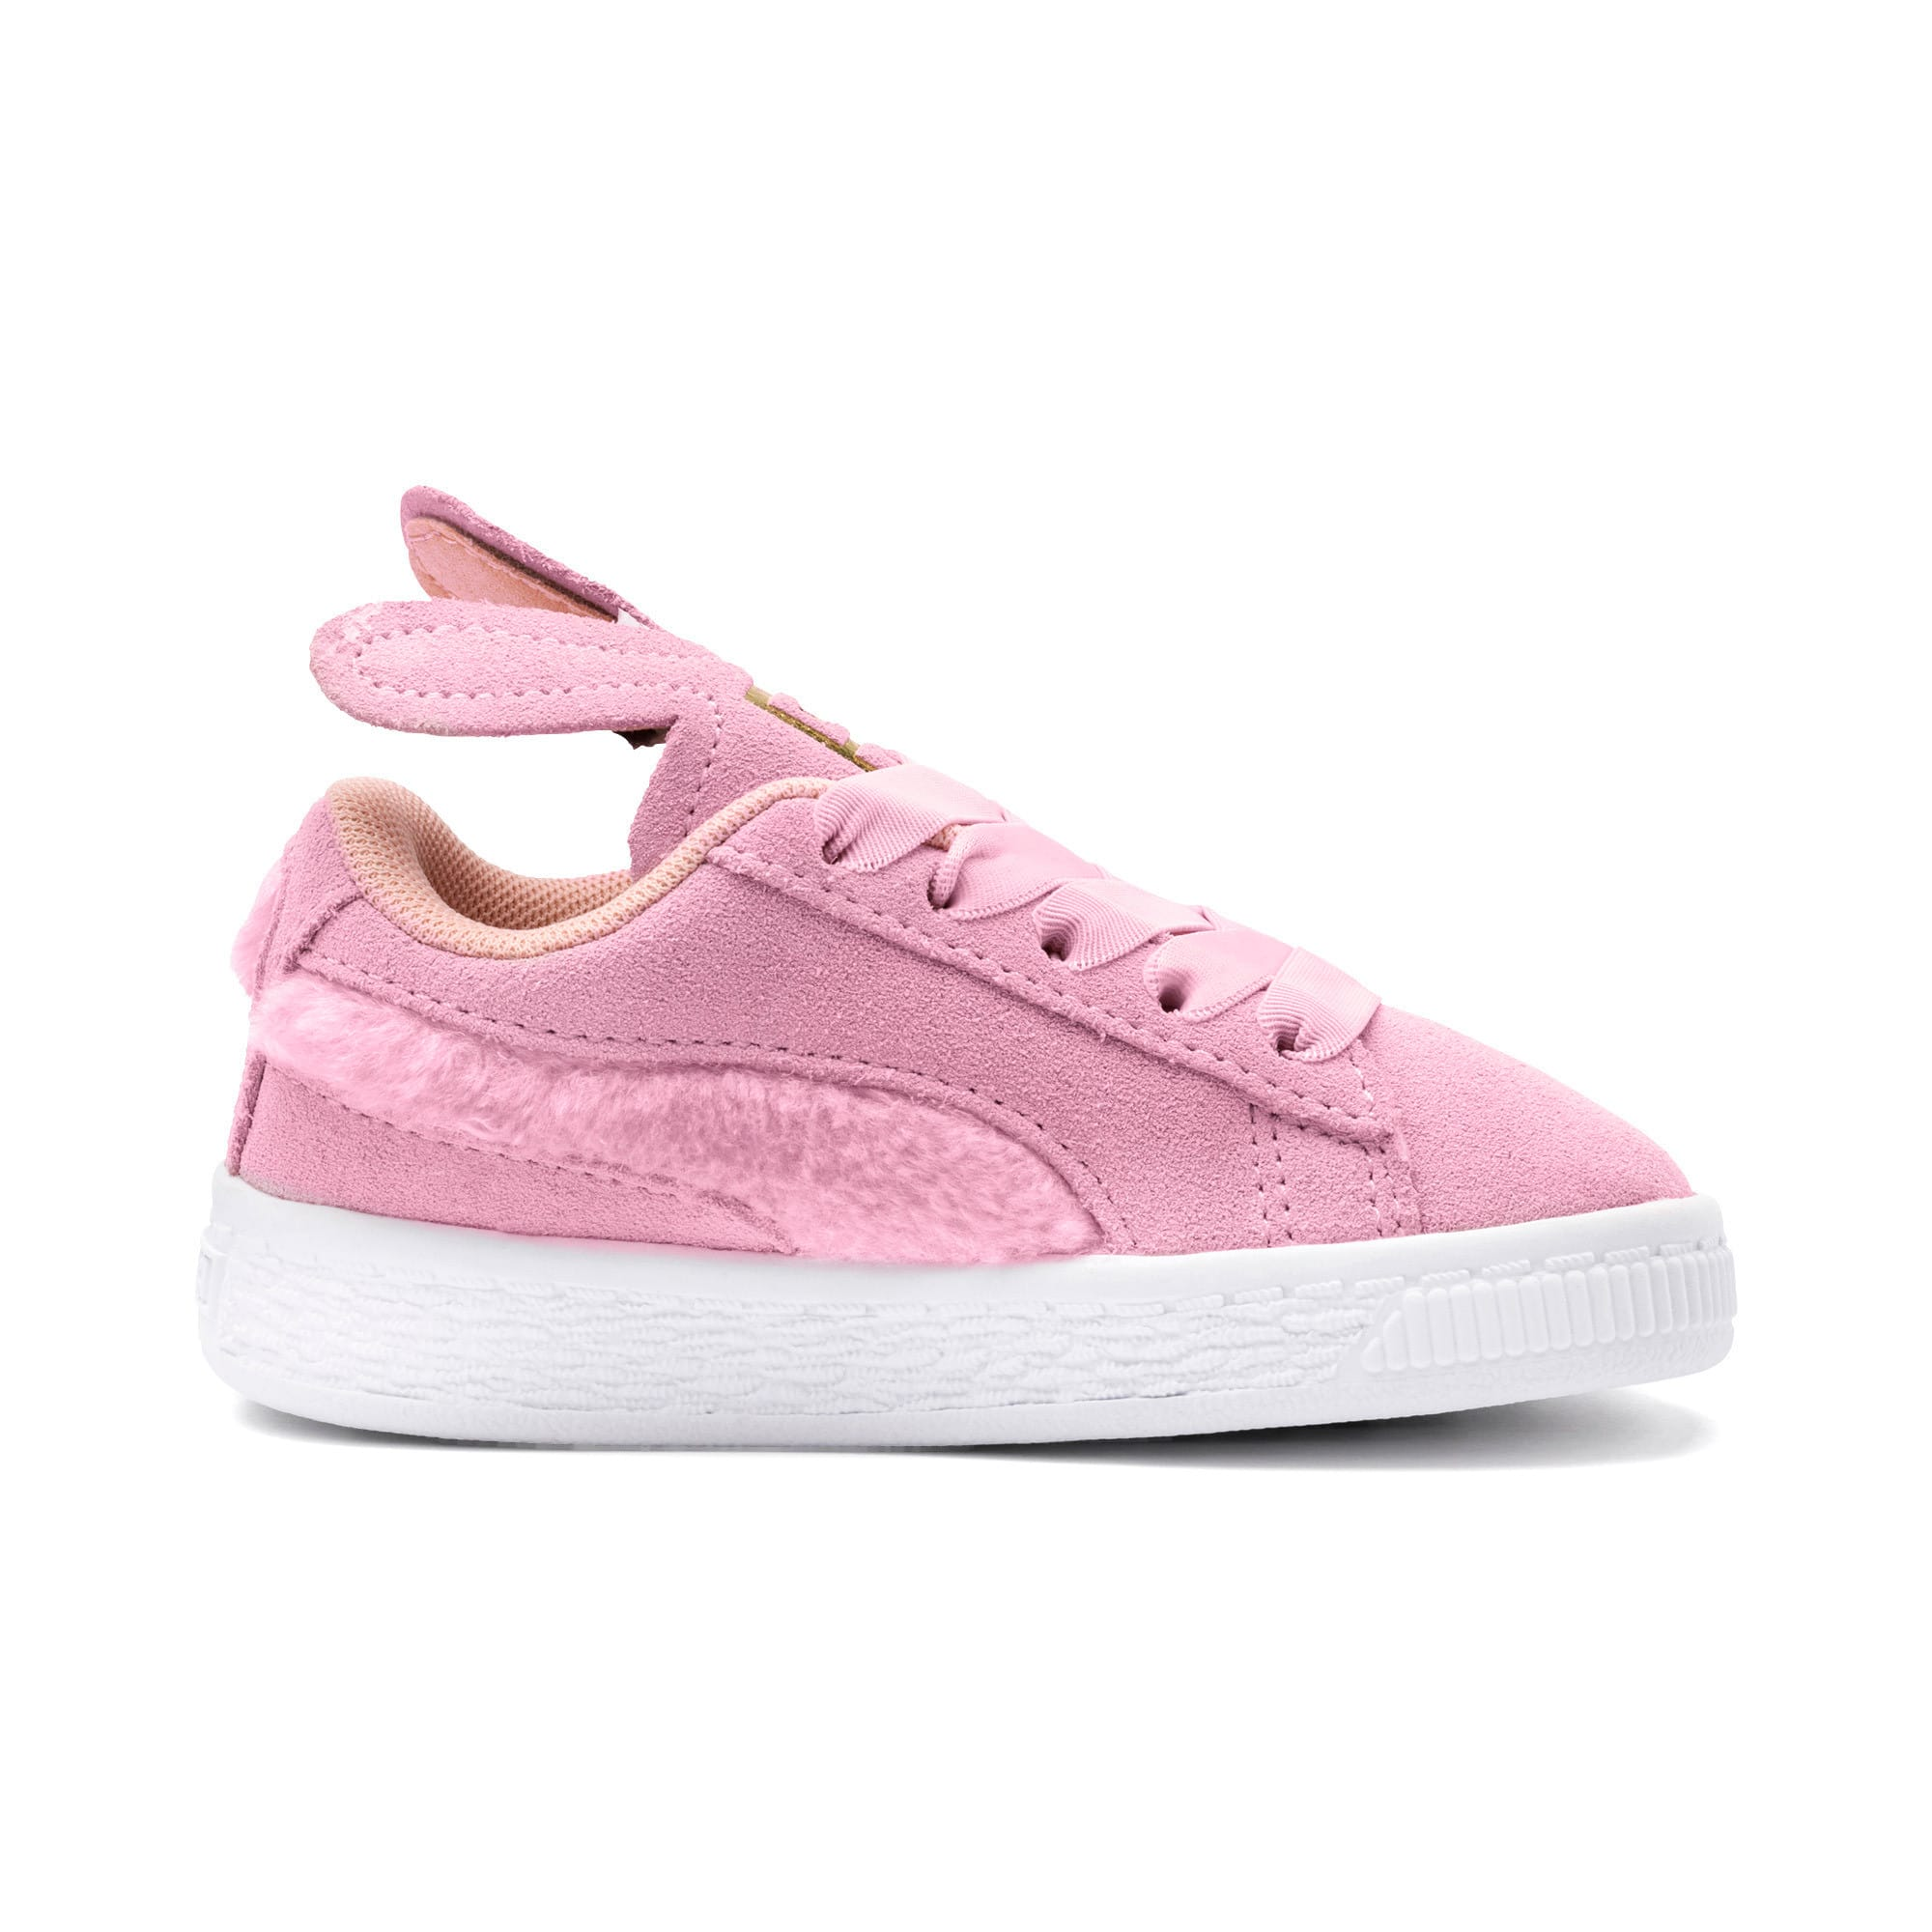 Thumbnail 5 of Suede Easter Kids' Trainers, Pale Pink-Coral Cloud, medium